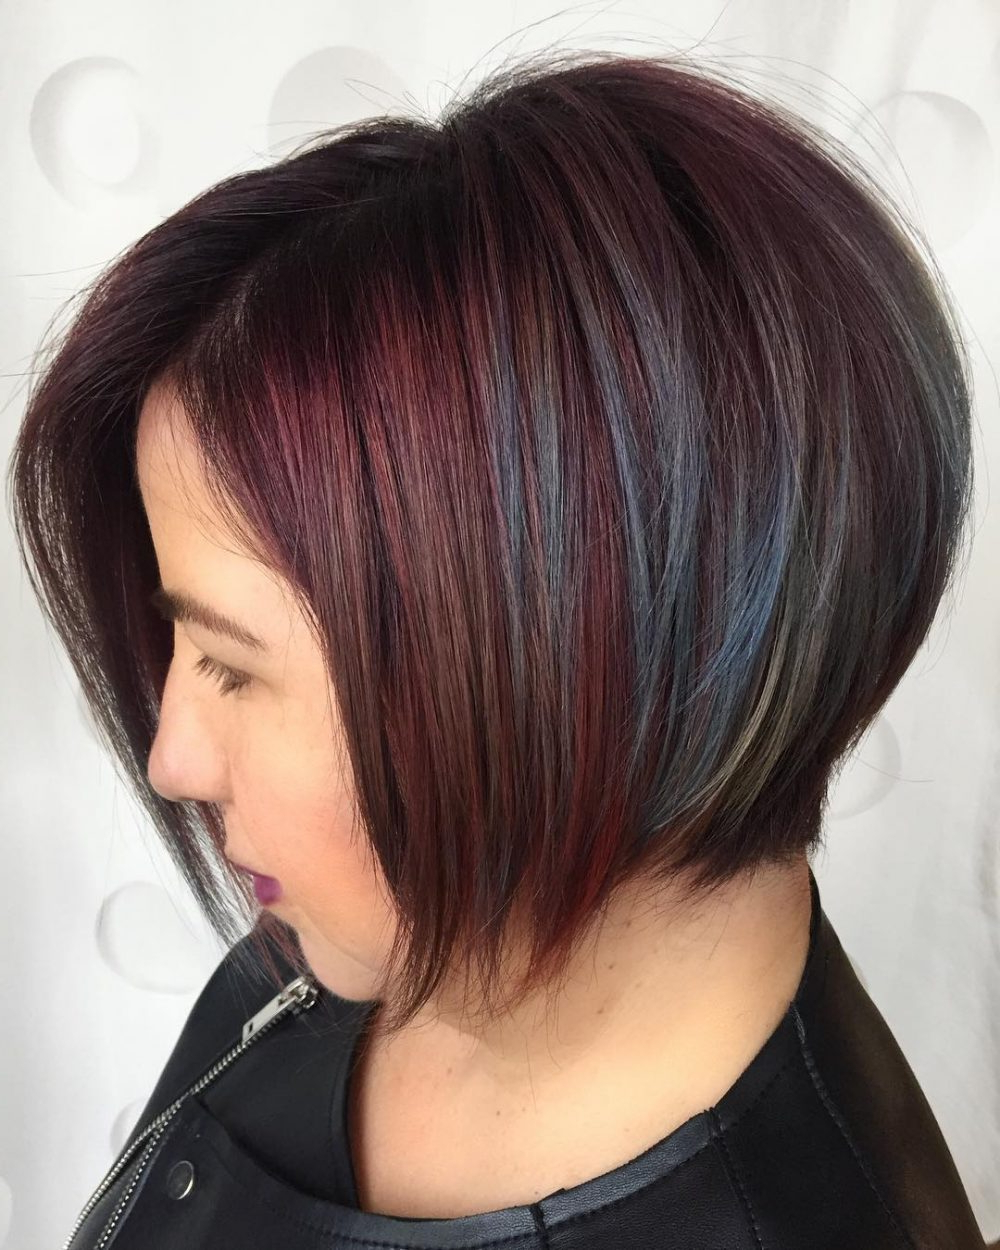 34 Greatest Short Haircuts And Hairstyles For Thick Hair For 2018 For Low Maintenance Short Haircuts For Thick Hair (View 9 of 25)